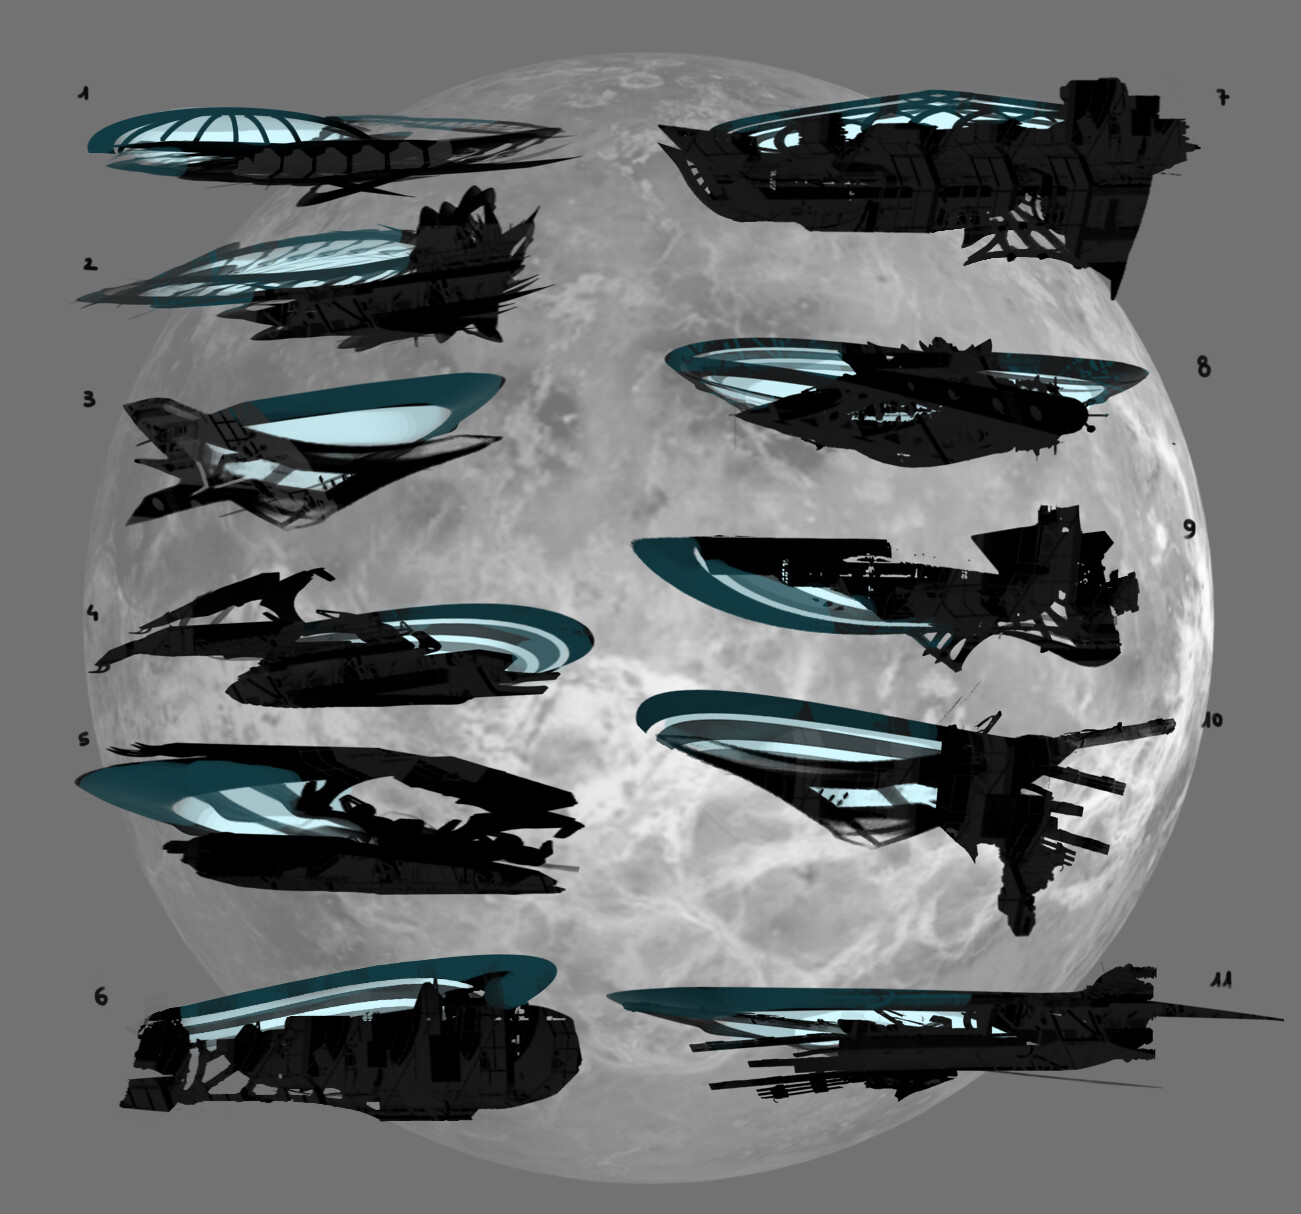 Starship thumbnails